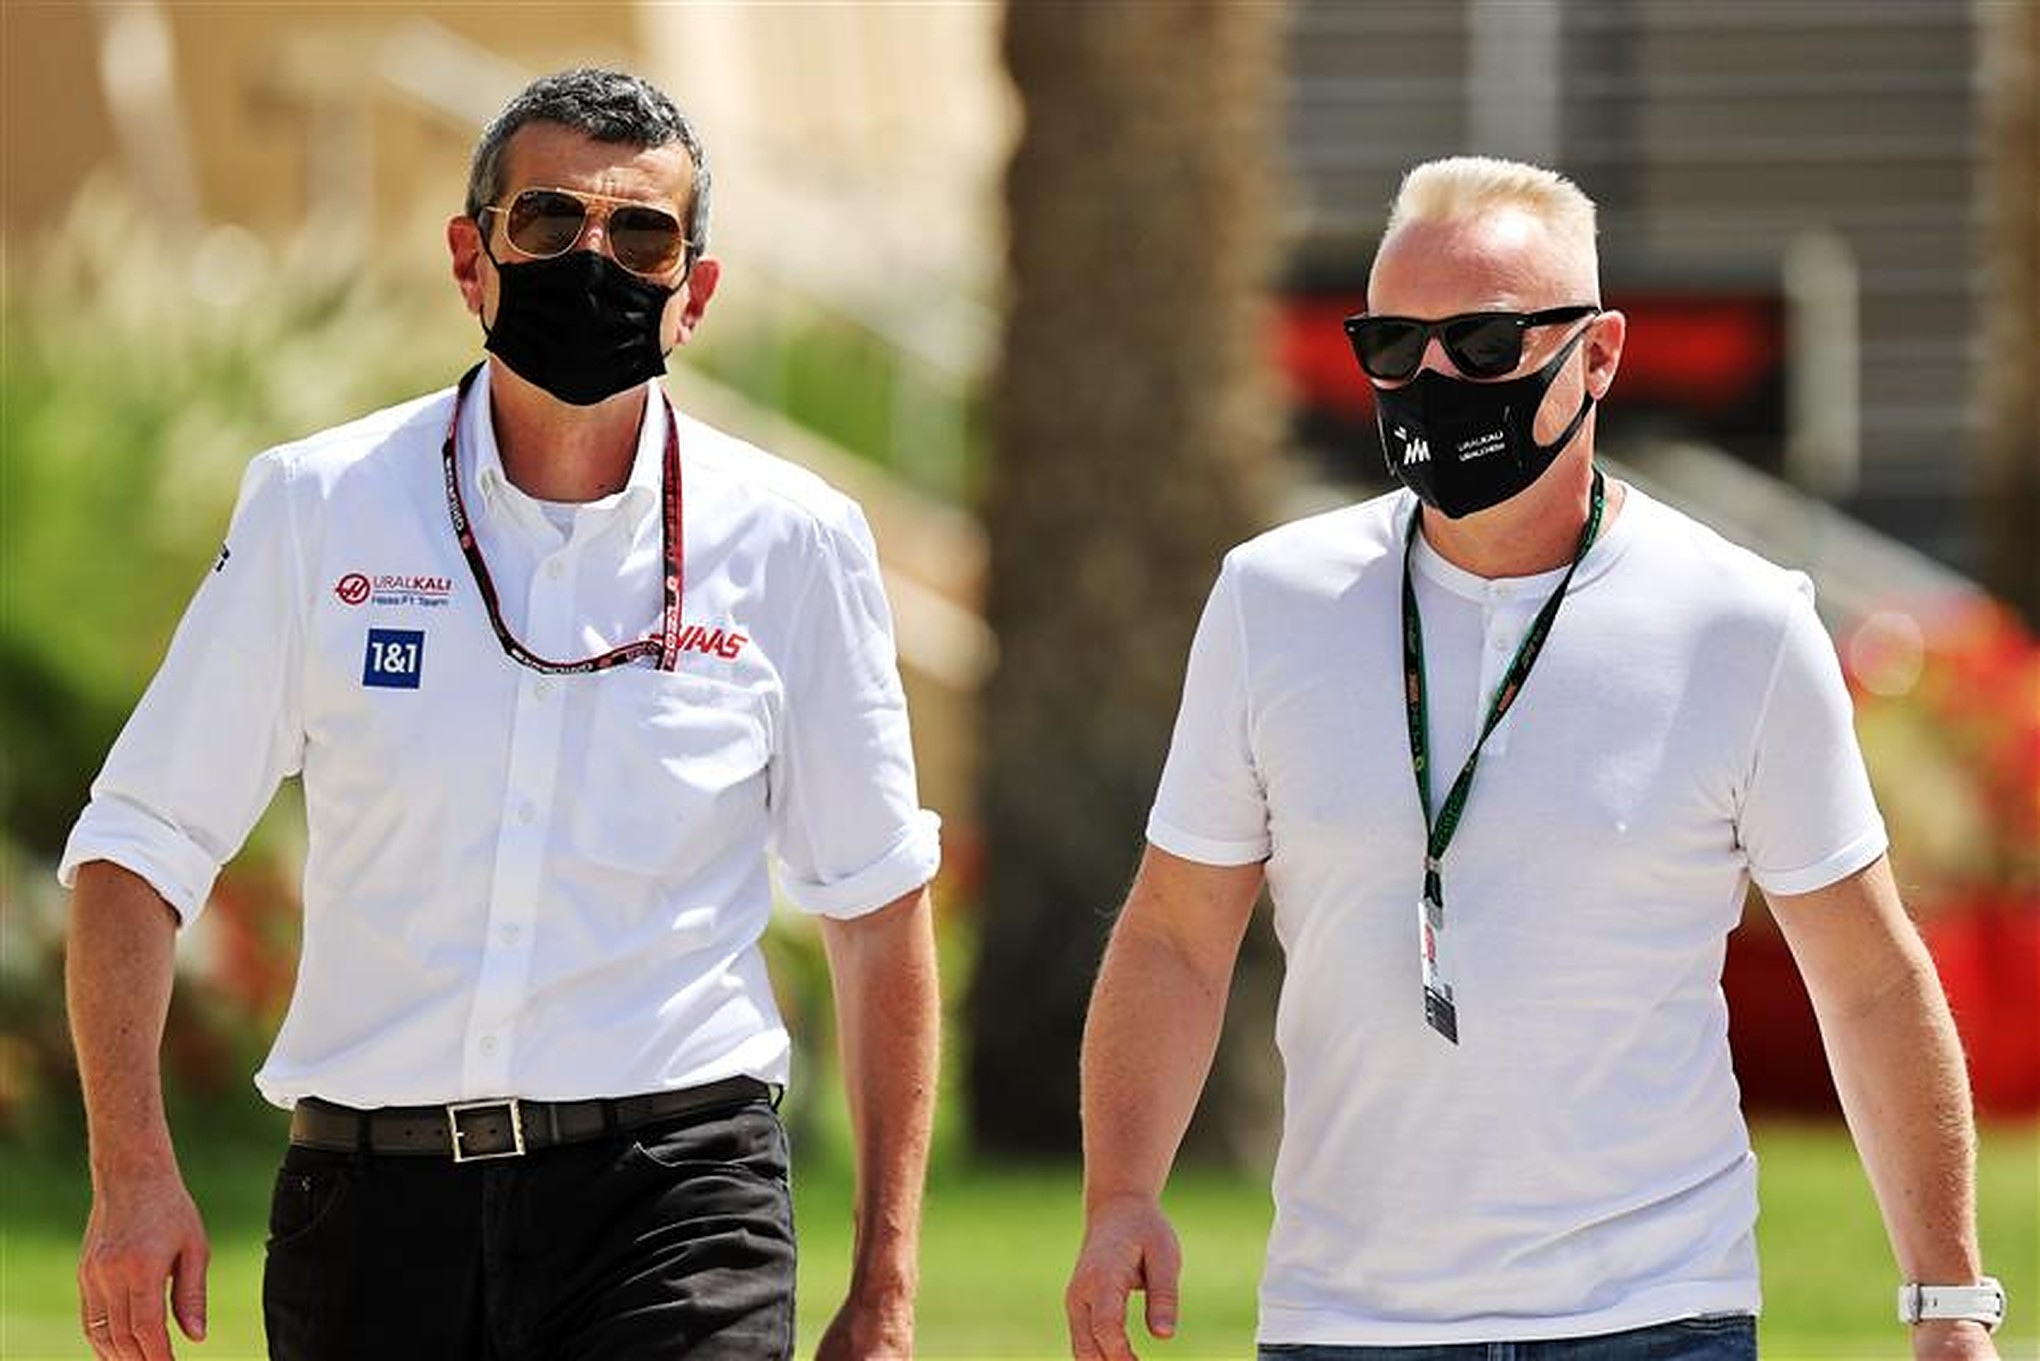 Guenther Steiner and Dmitry Mazepin at Haas F1 - Formula1news.co.uk